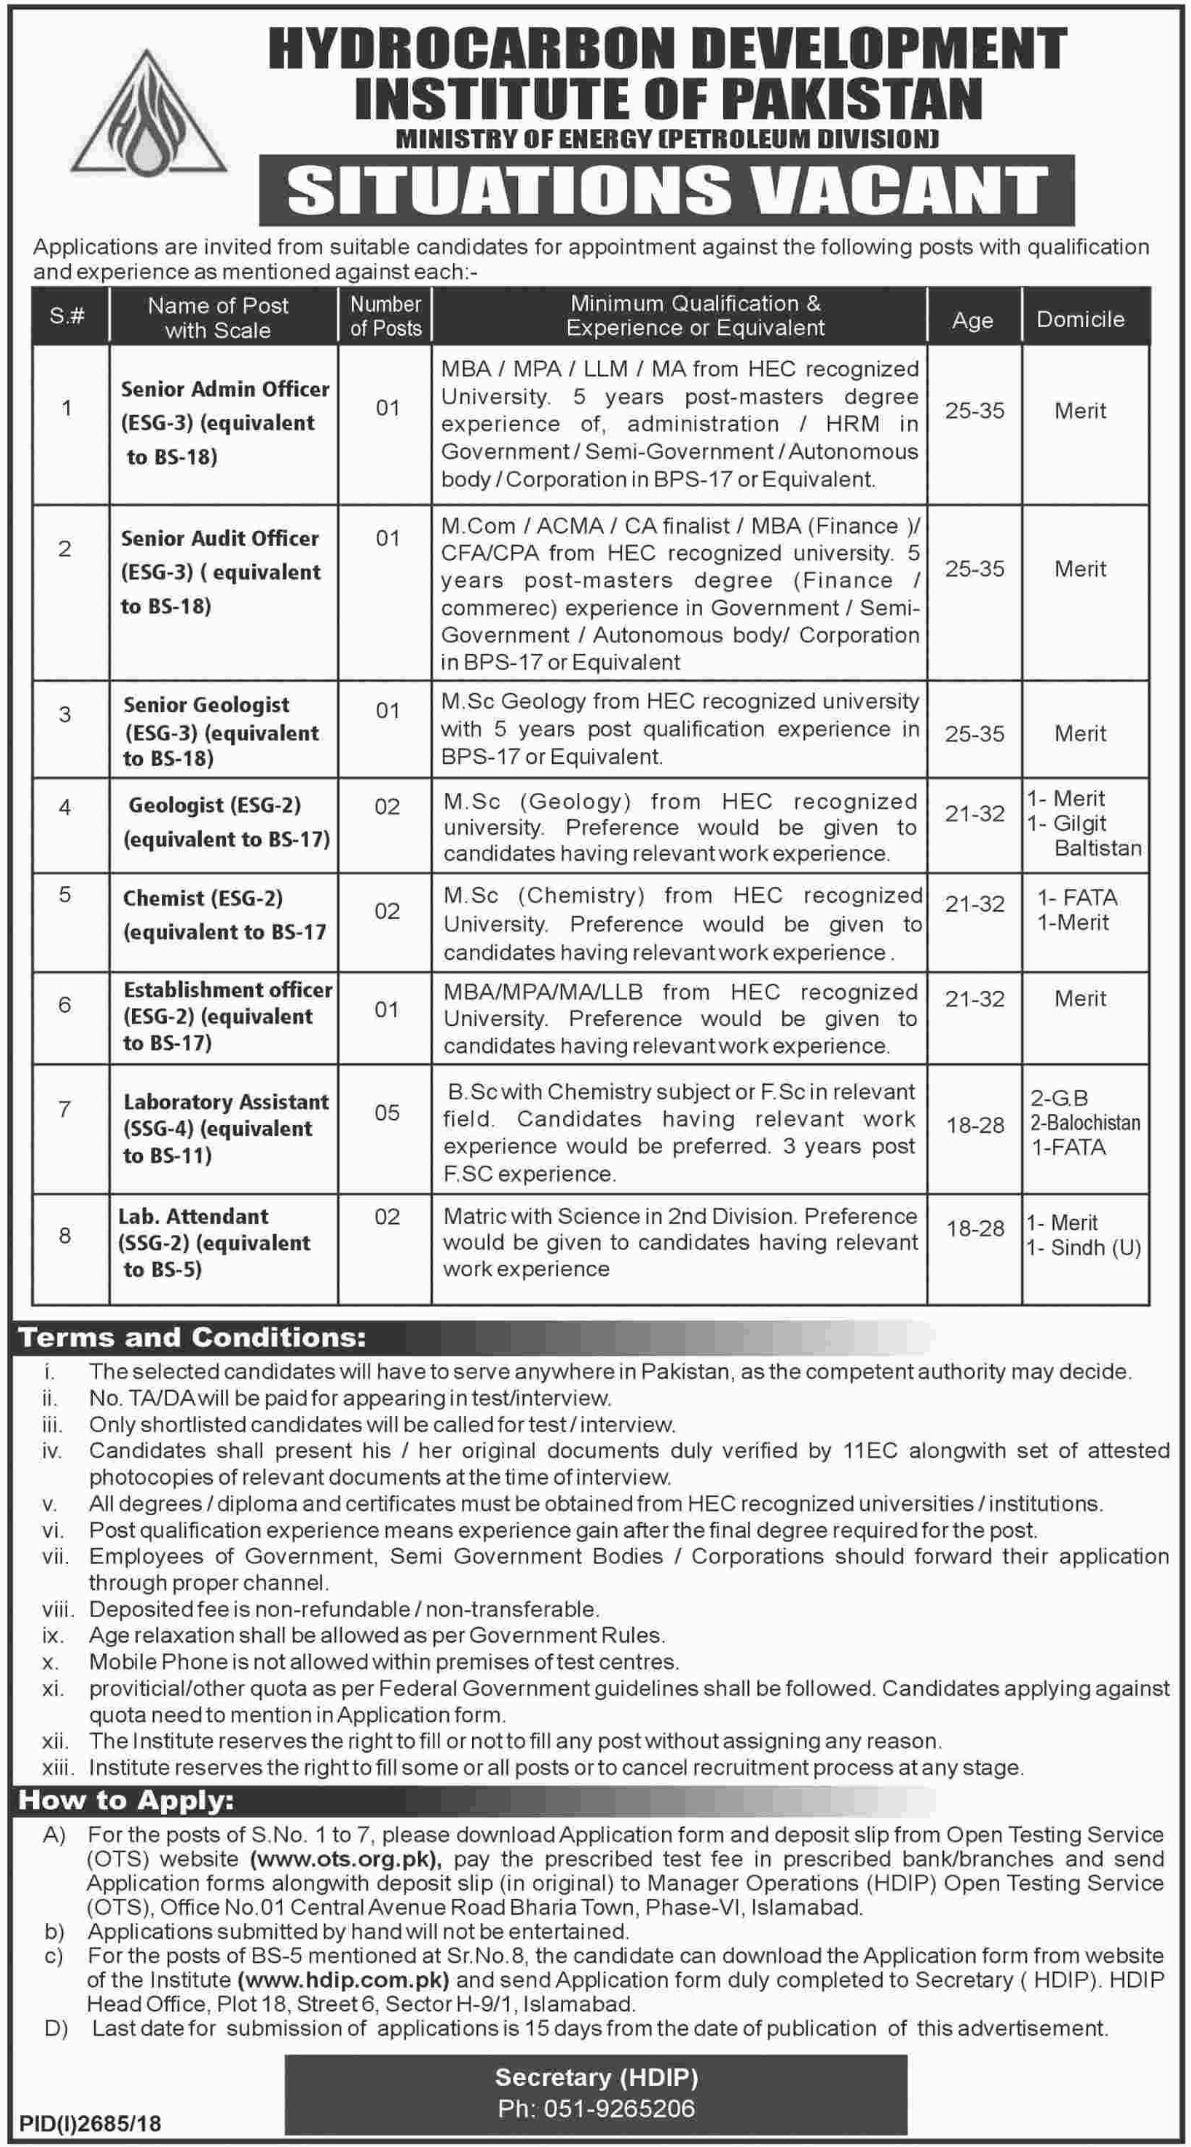 Ministry of Energy Jobs 2018 Hydrocarbon Development Institute of Pakistan